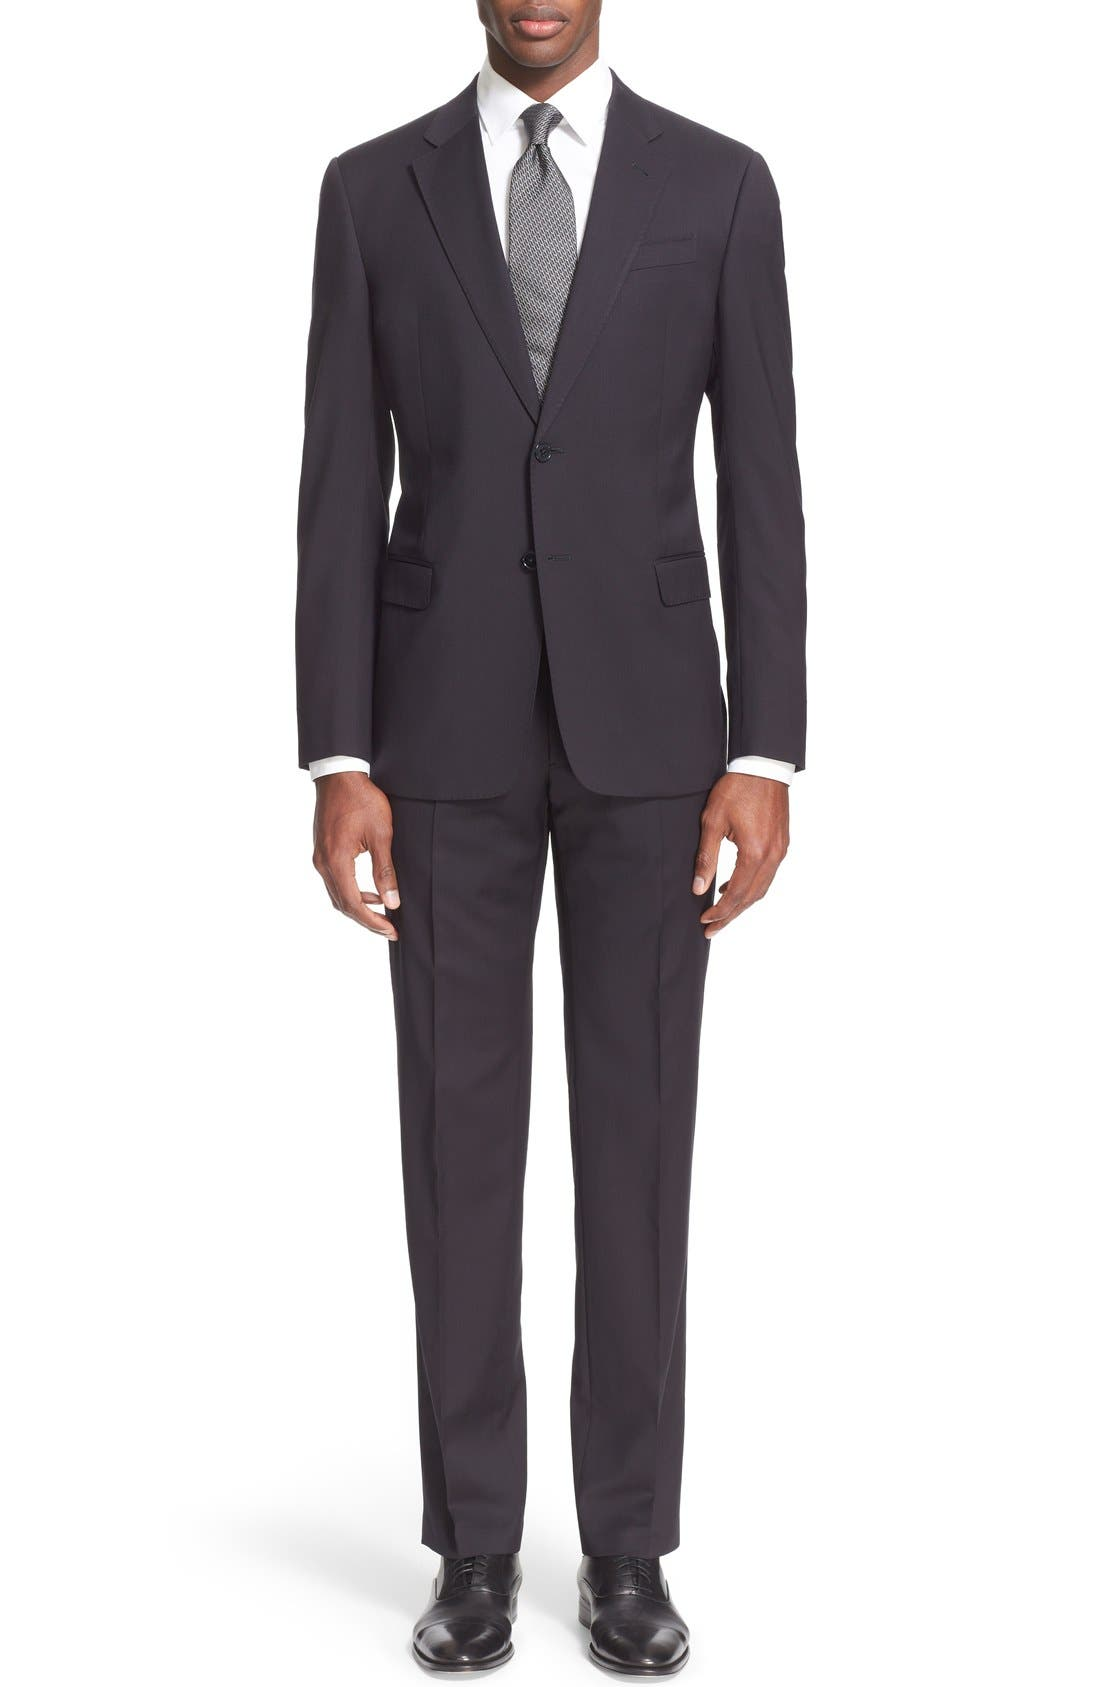 ARMANI COLLEZIONI 'G-Line' Trim Fit Solid Wool Suit